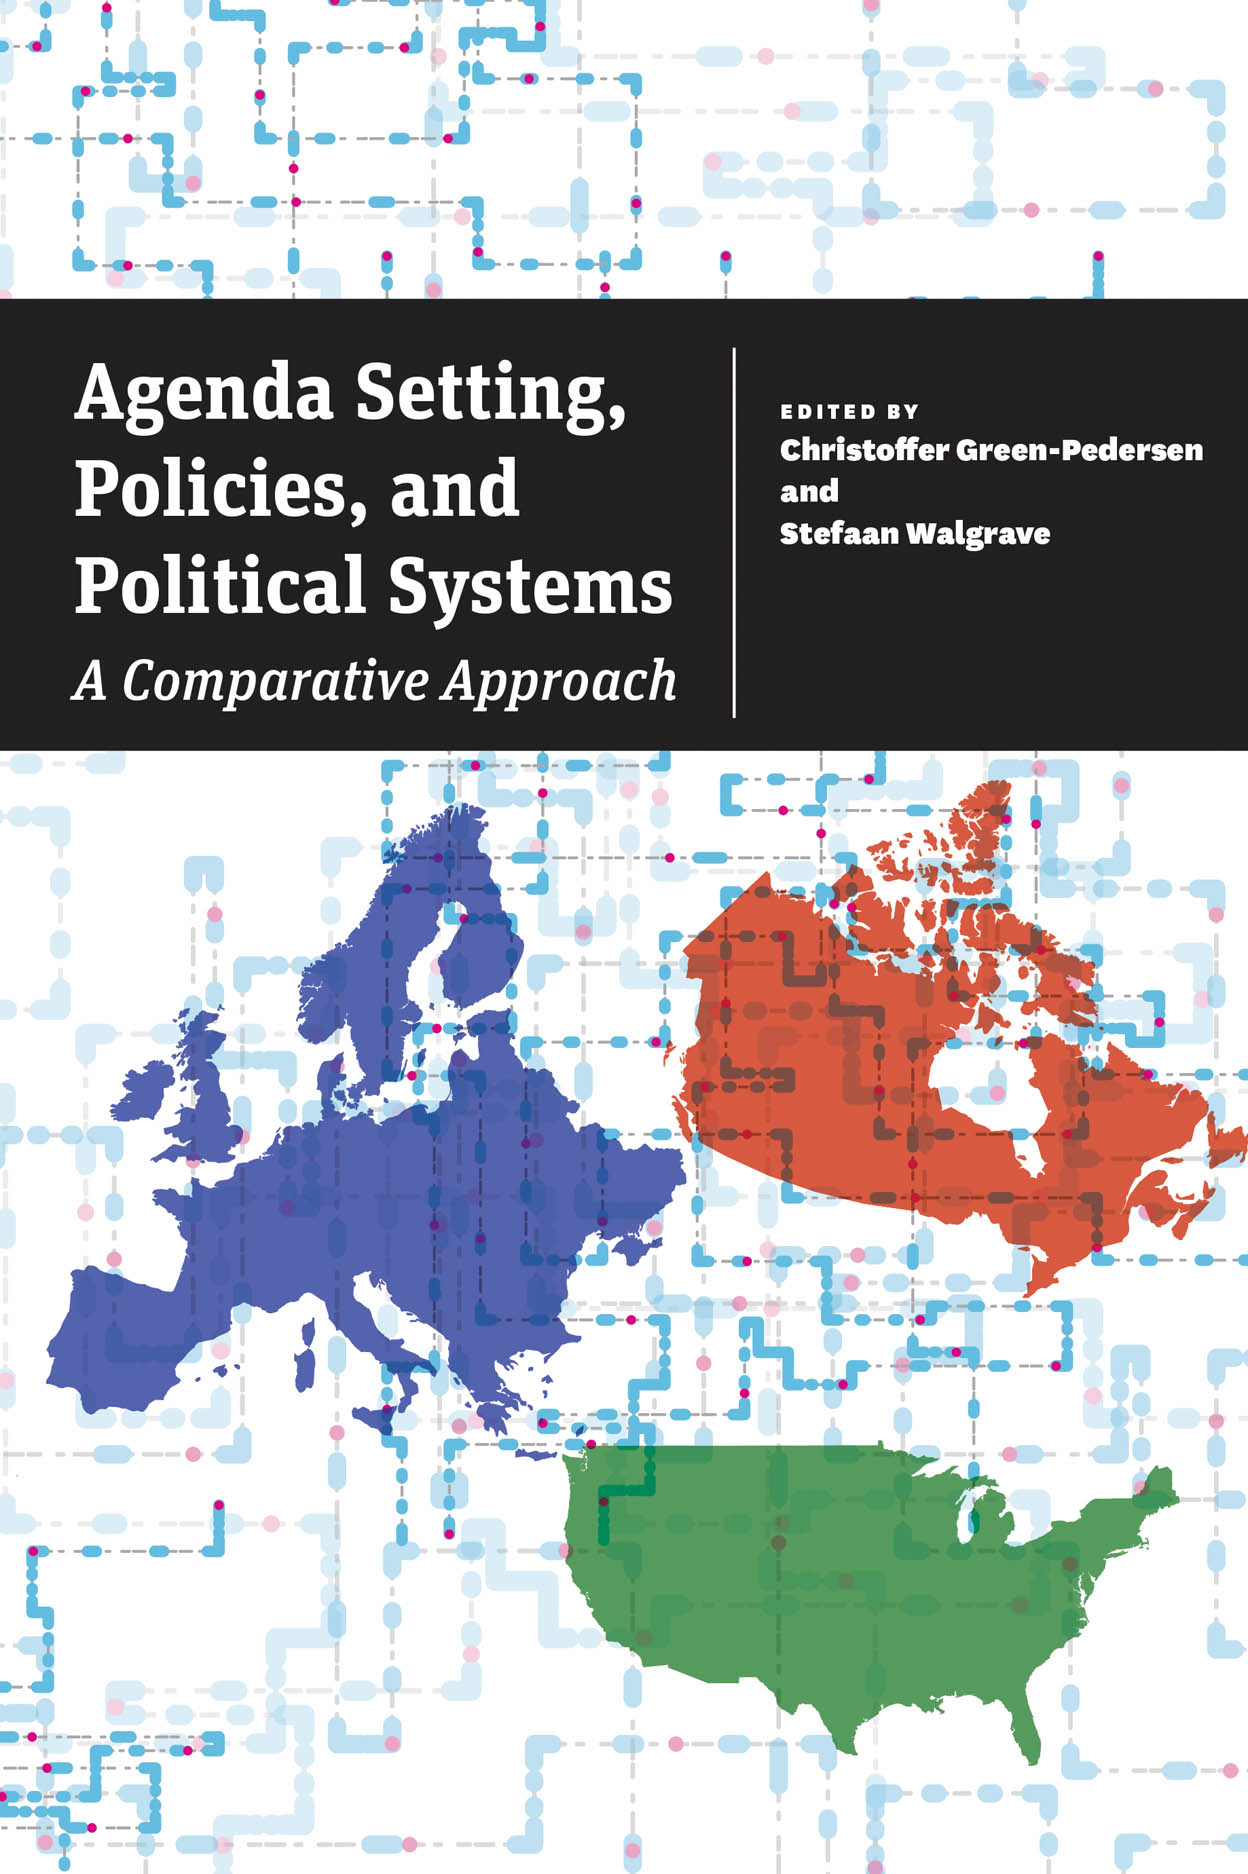 Agenda Setting, Policies, and Political Systems